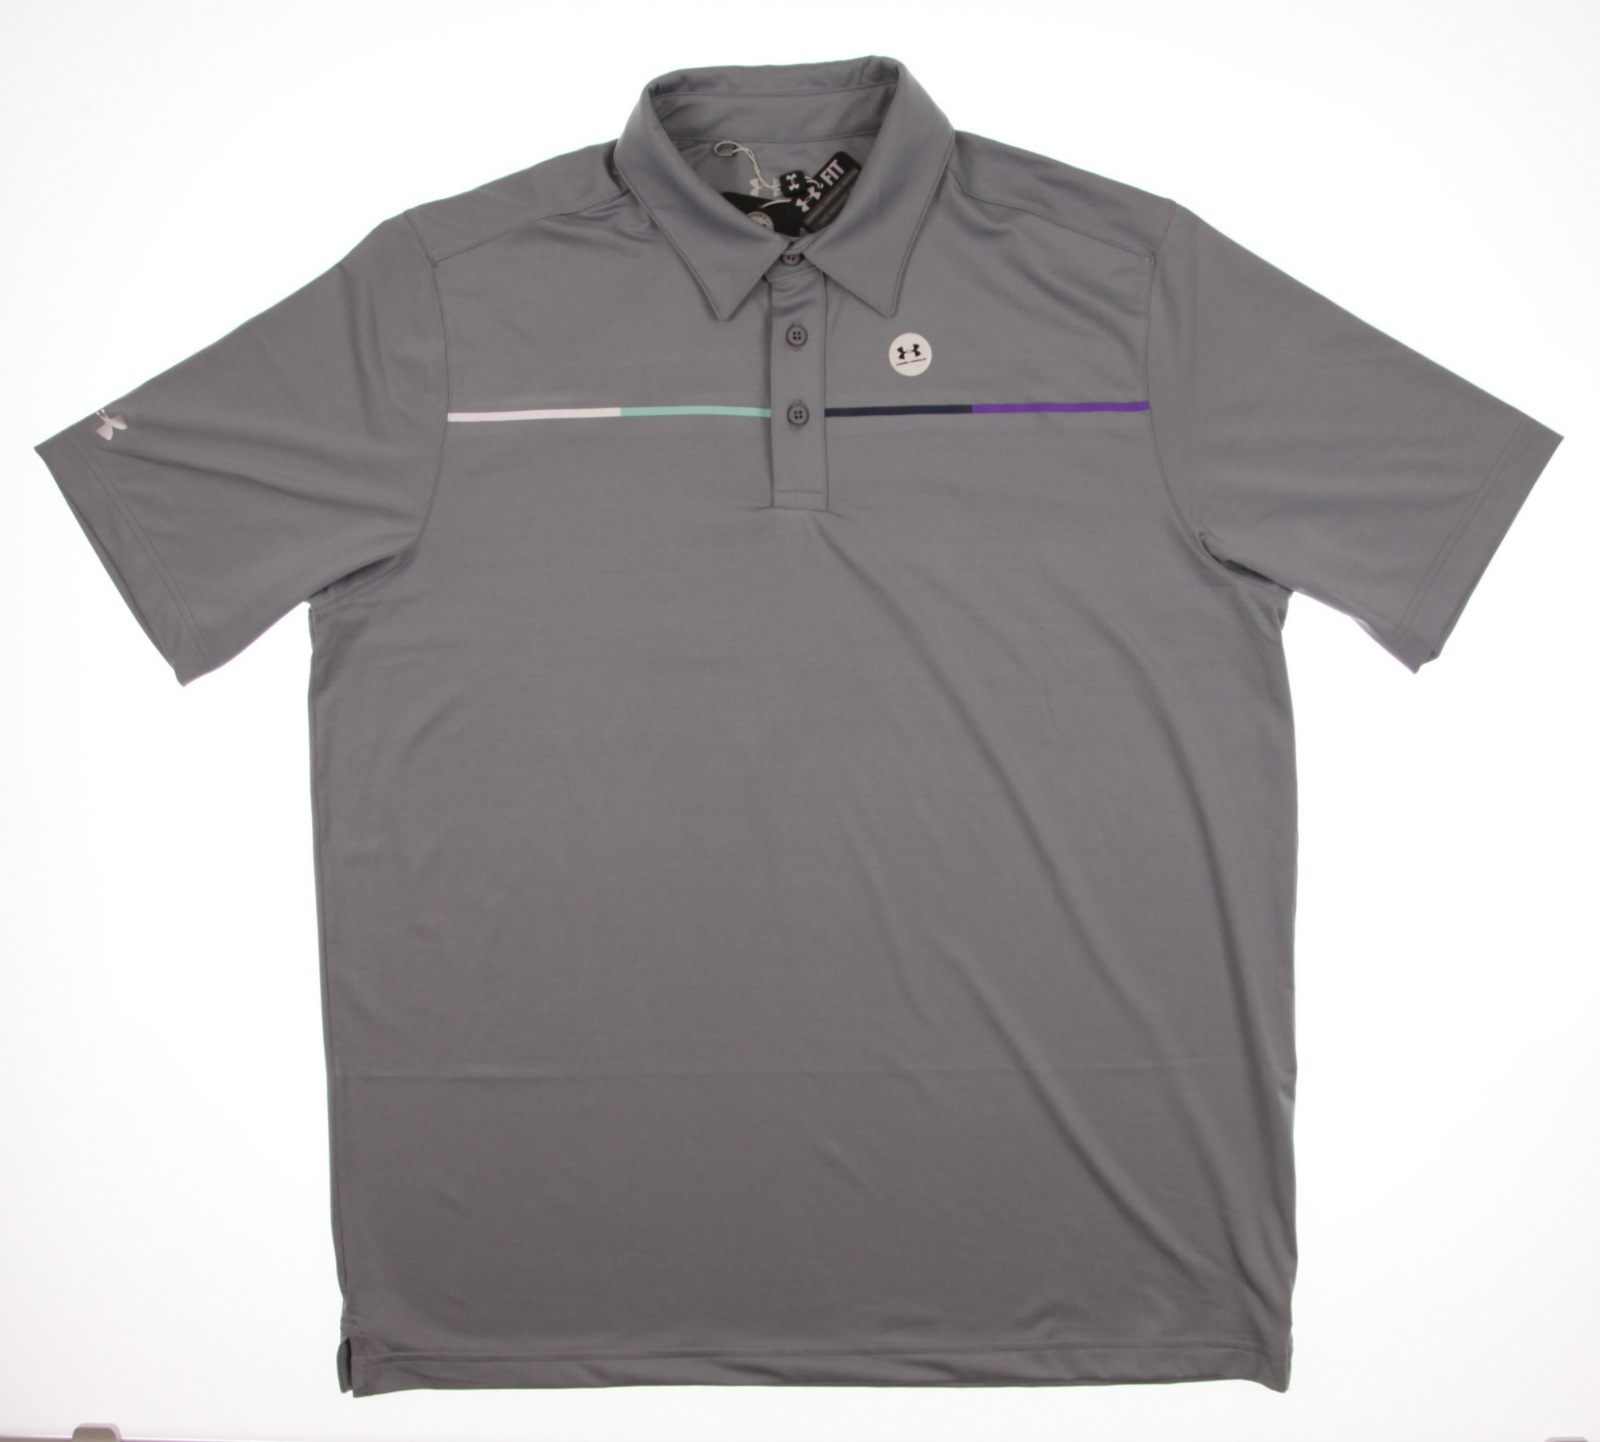 Under Armour Golf Shirts For Men